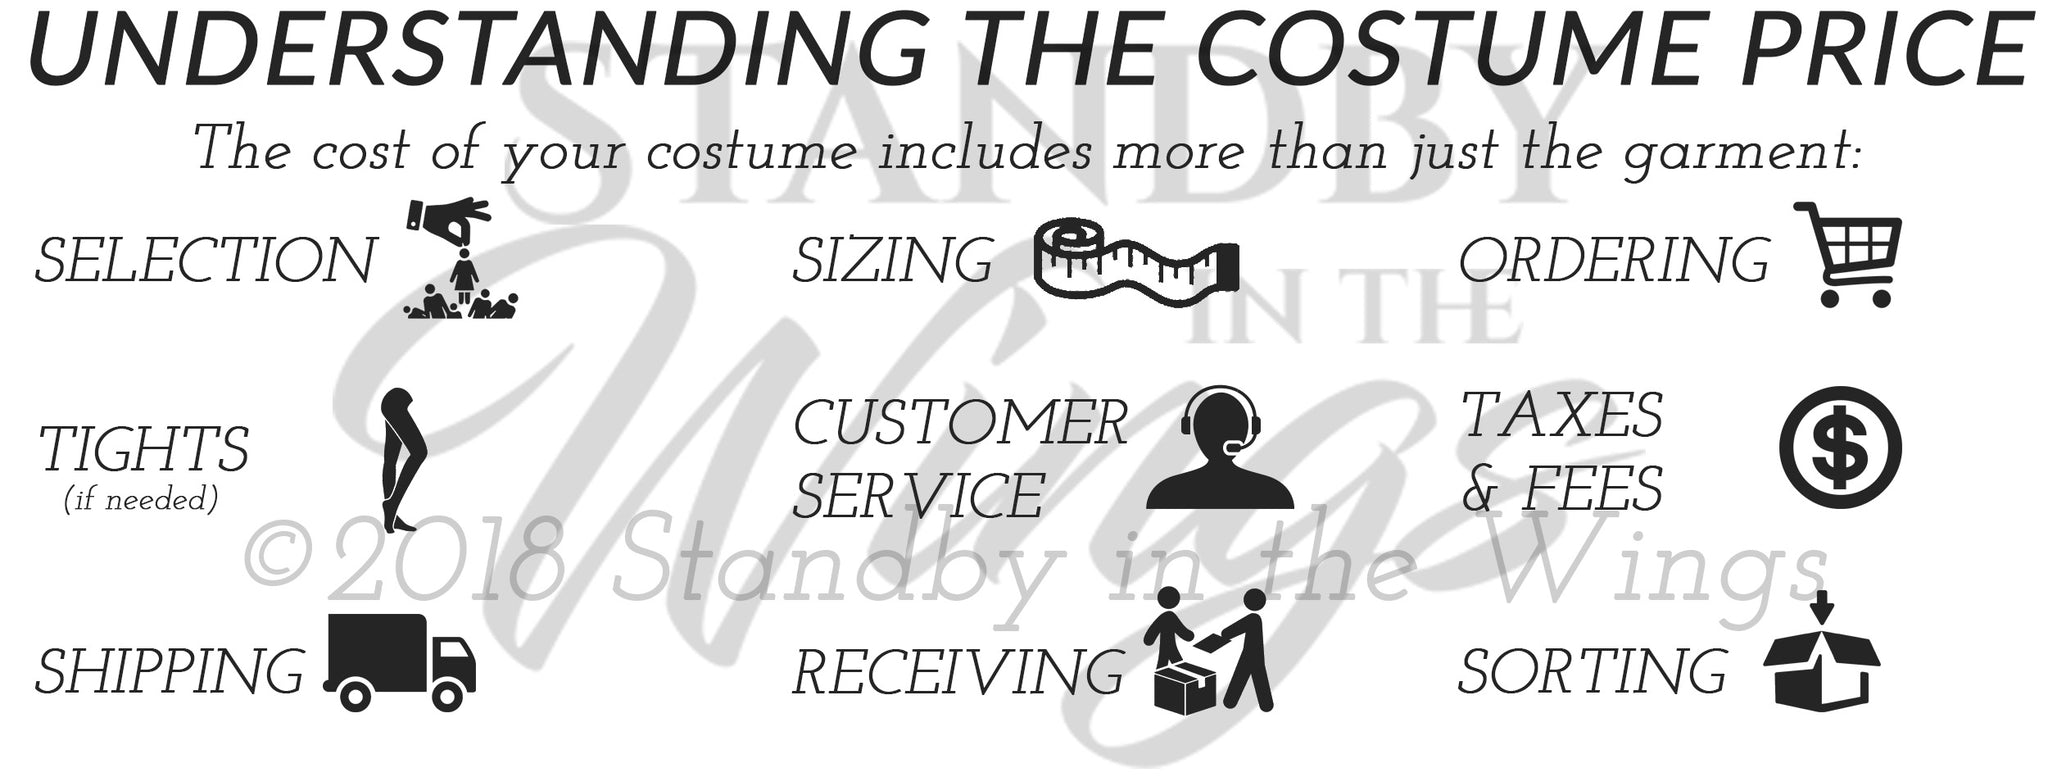 Costume Value Graphic